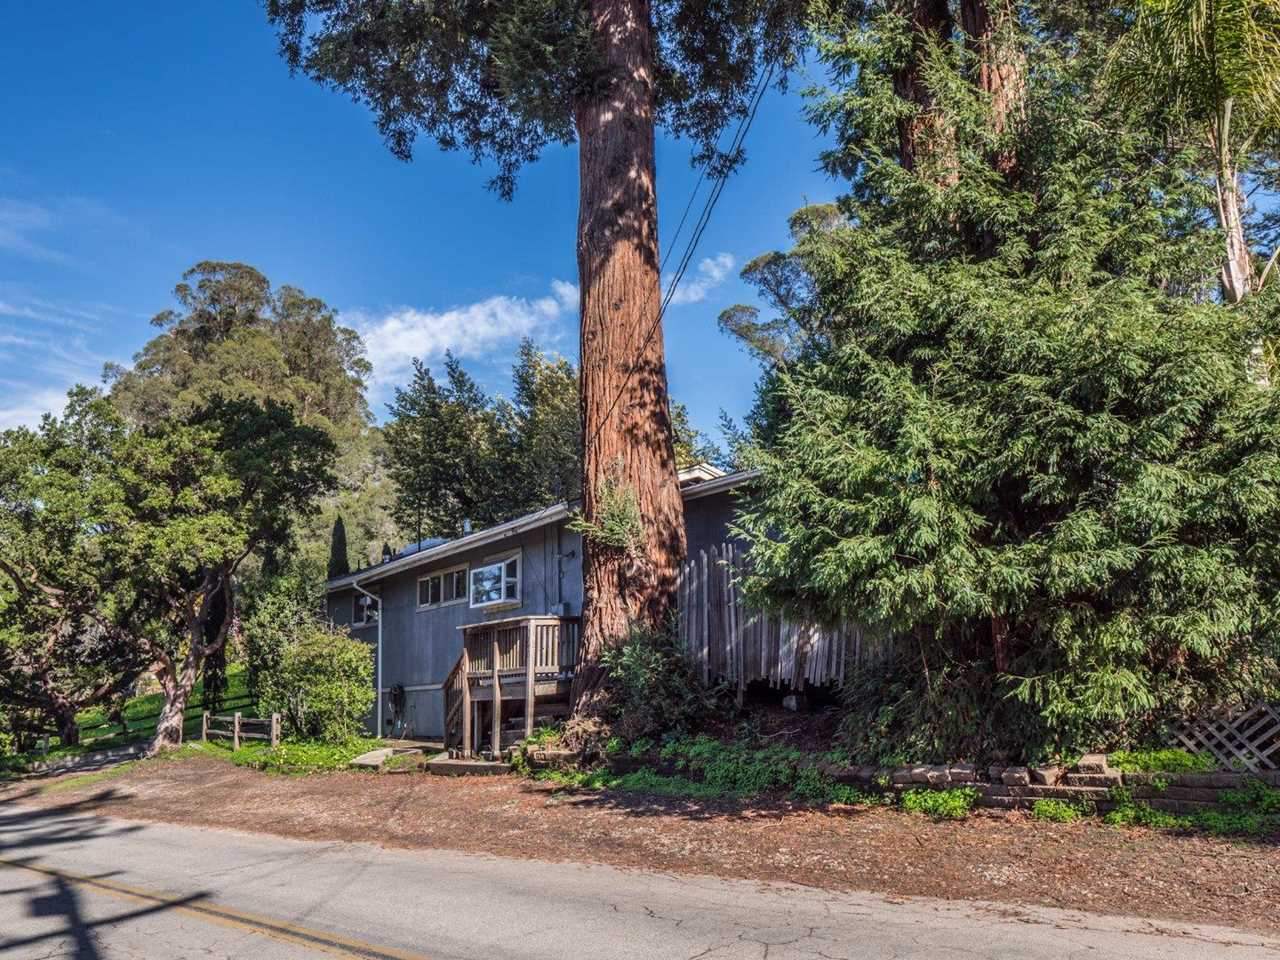 3740 Cherryvale Ave,SOQUEL,CA,homes for sale in SOQUEL Photo 1